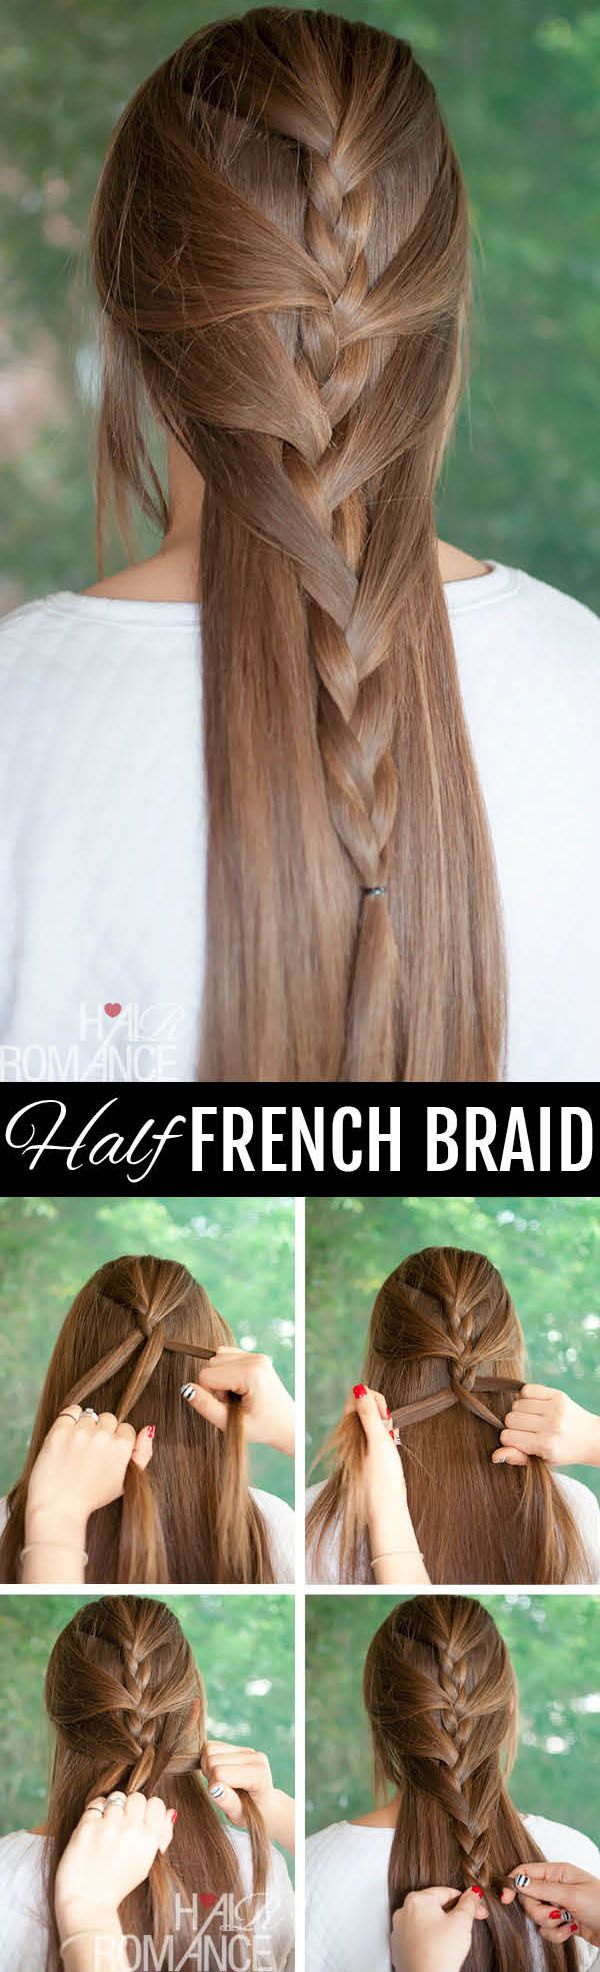 Fabulous step by step hair tutorials for whenever my hair is longer